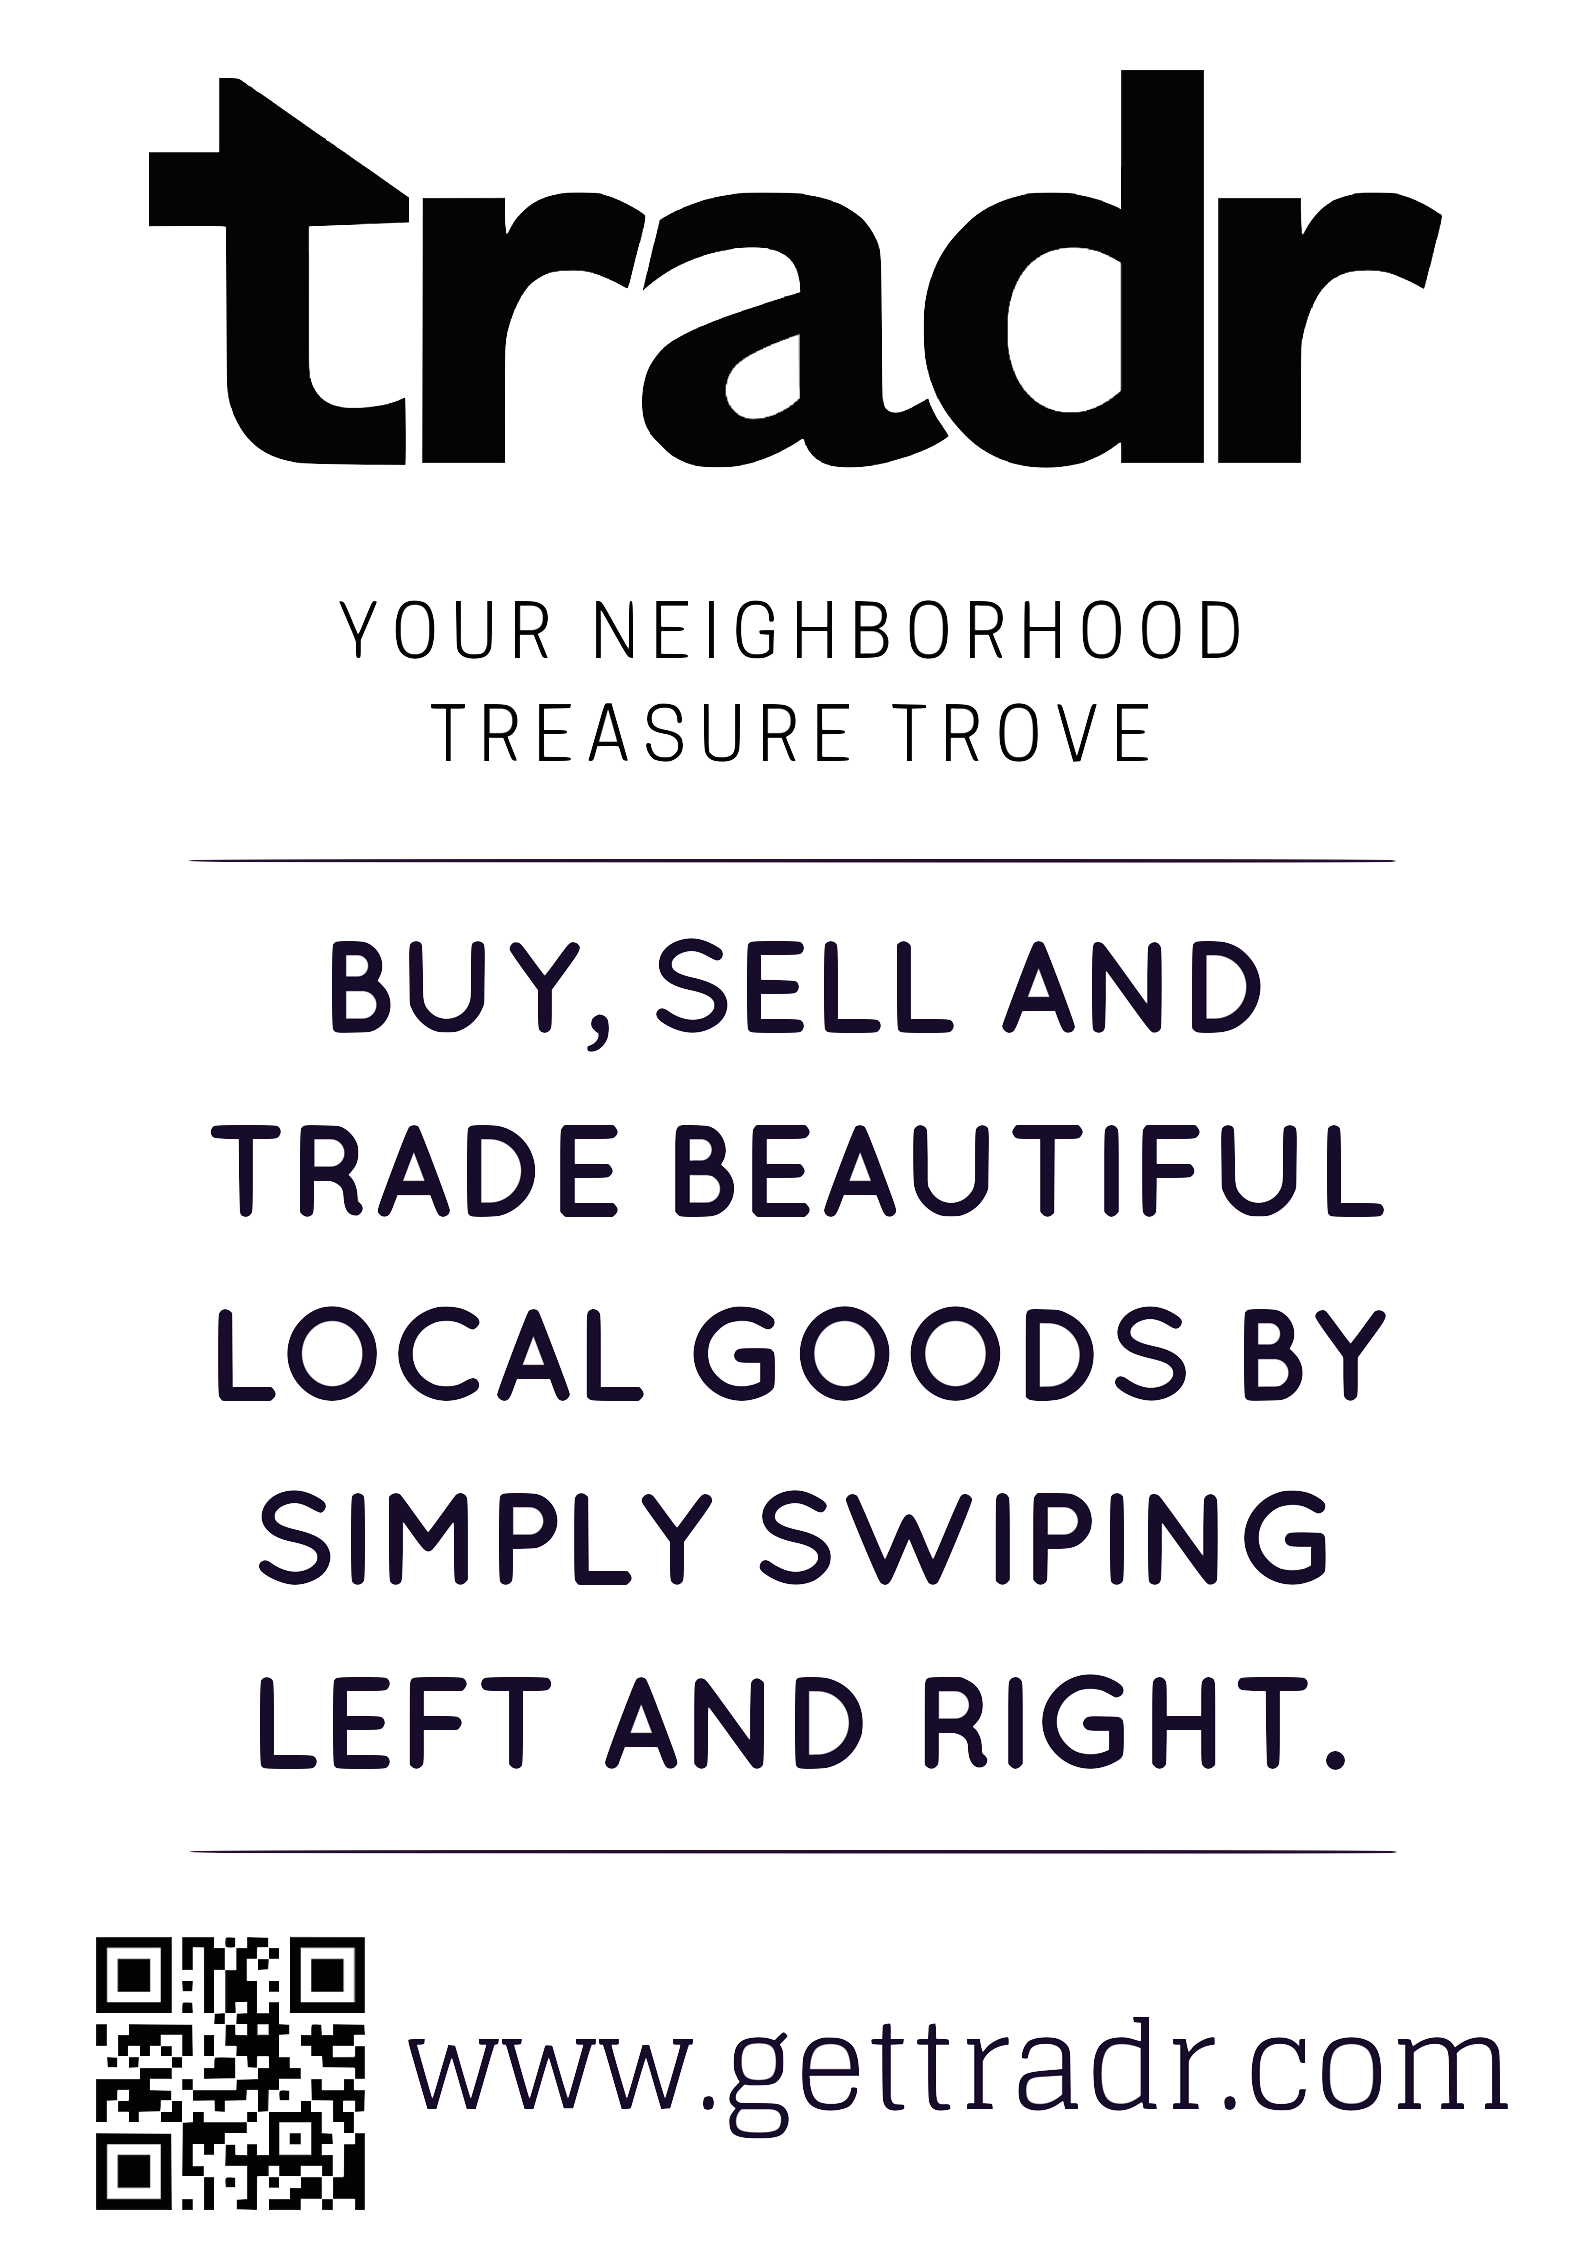 Tradr lets you Buy, Sell, And Trade Beautiful Local Goods By Simply Swiping Left and Right